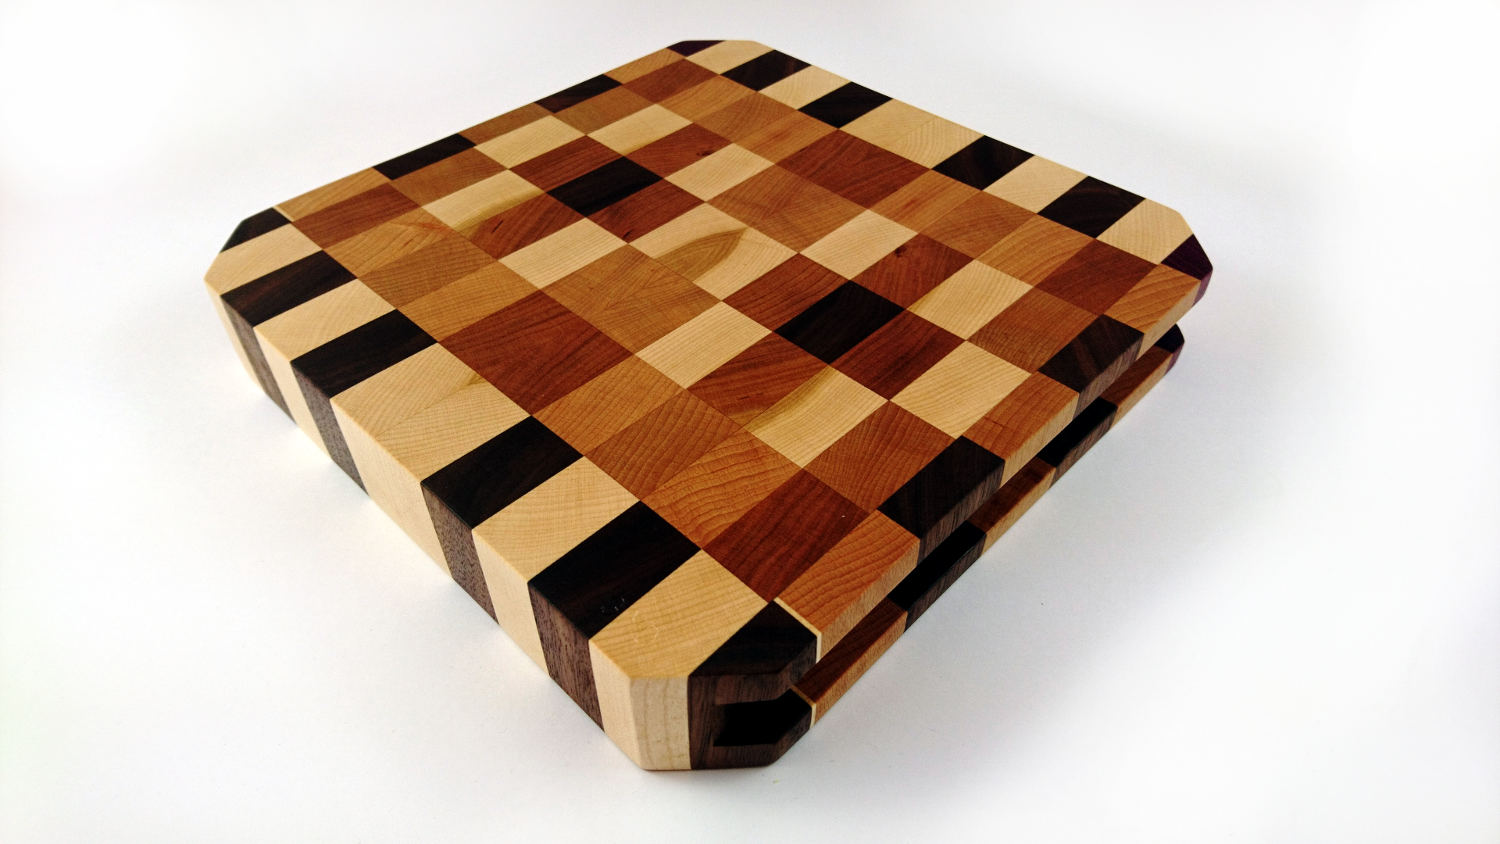 Isometric view of Butchers Block Small with Cut Corners